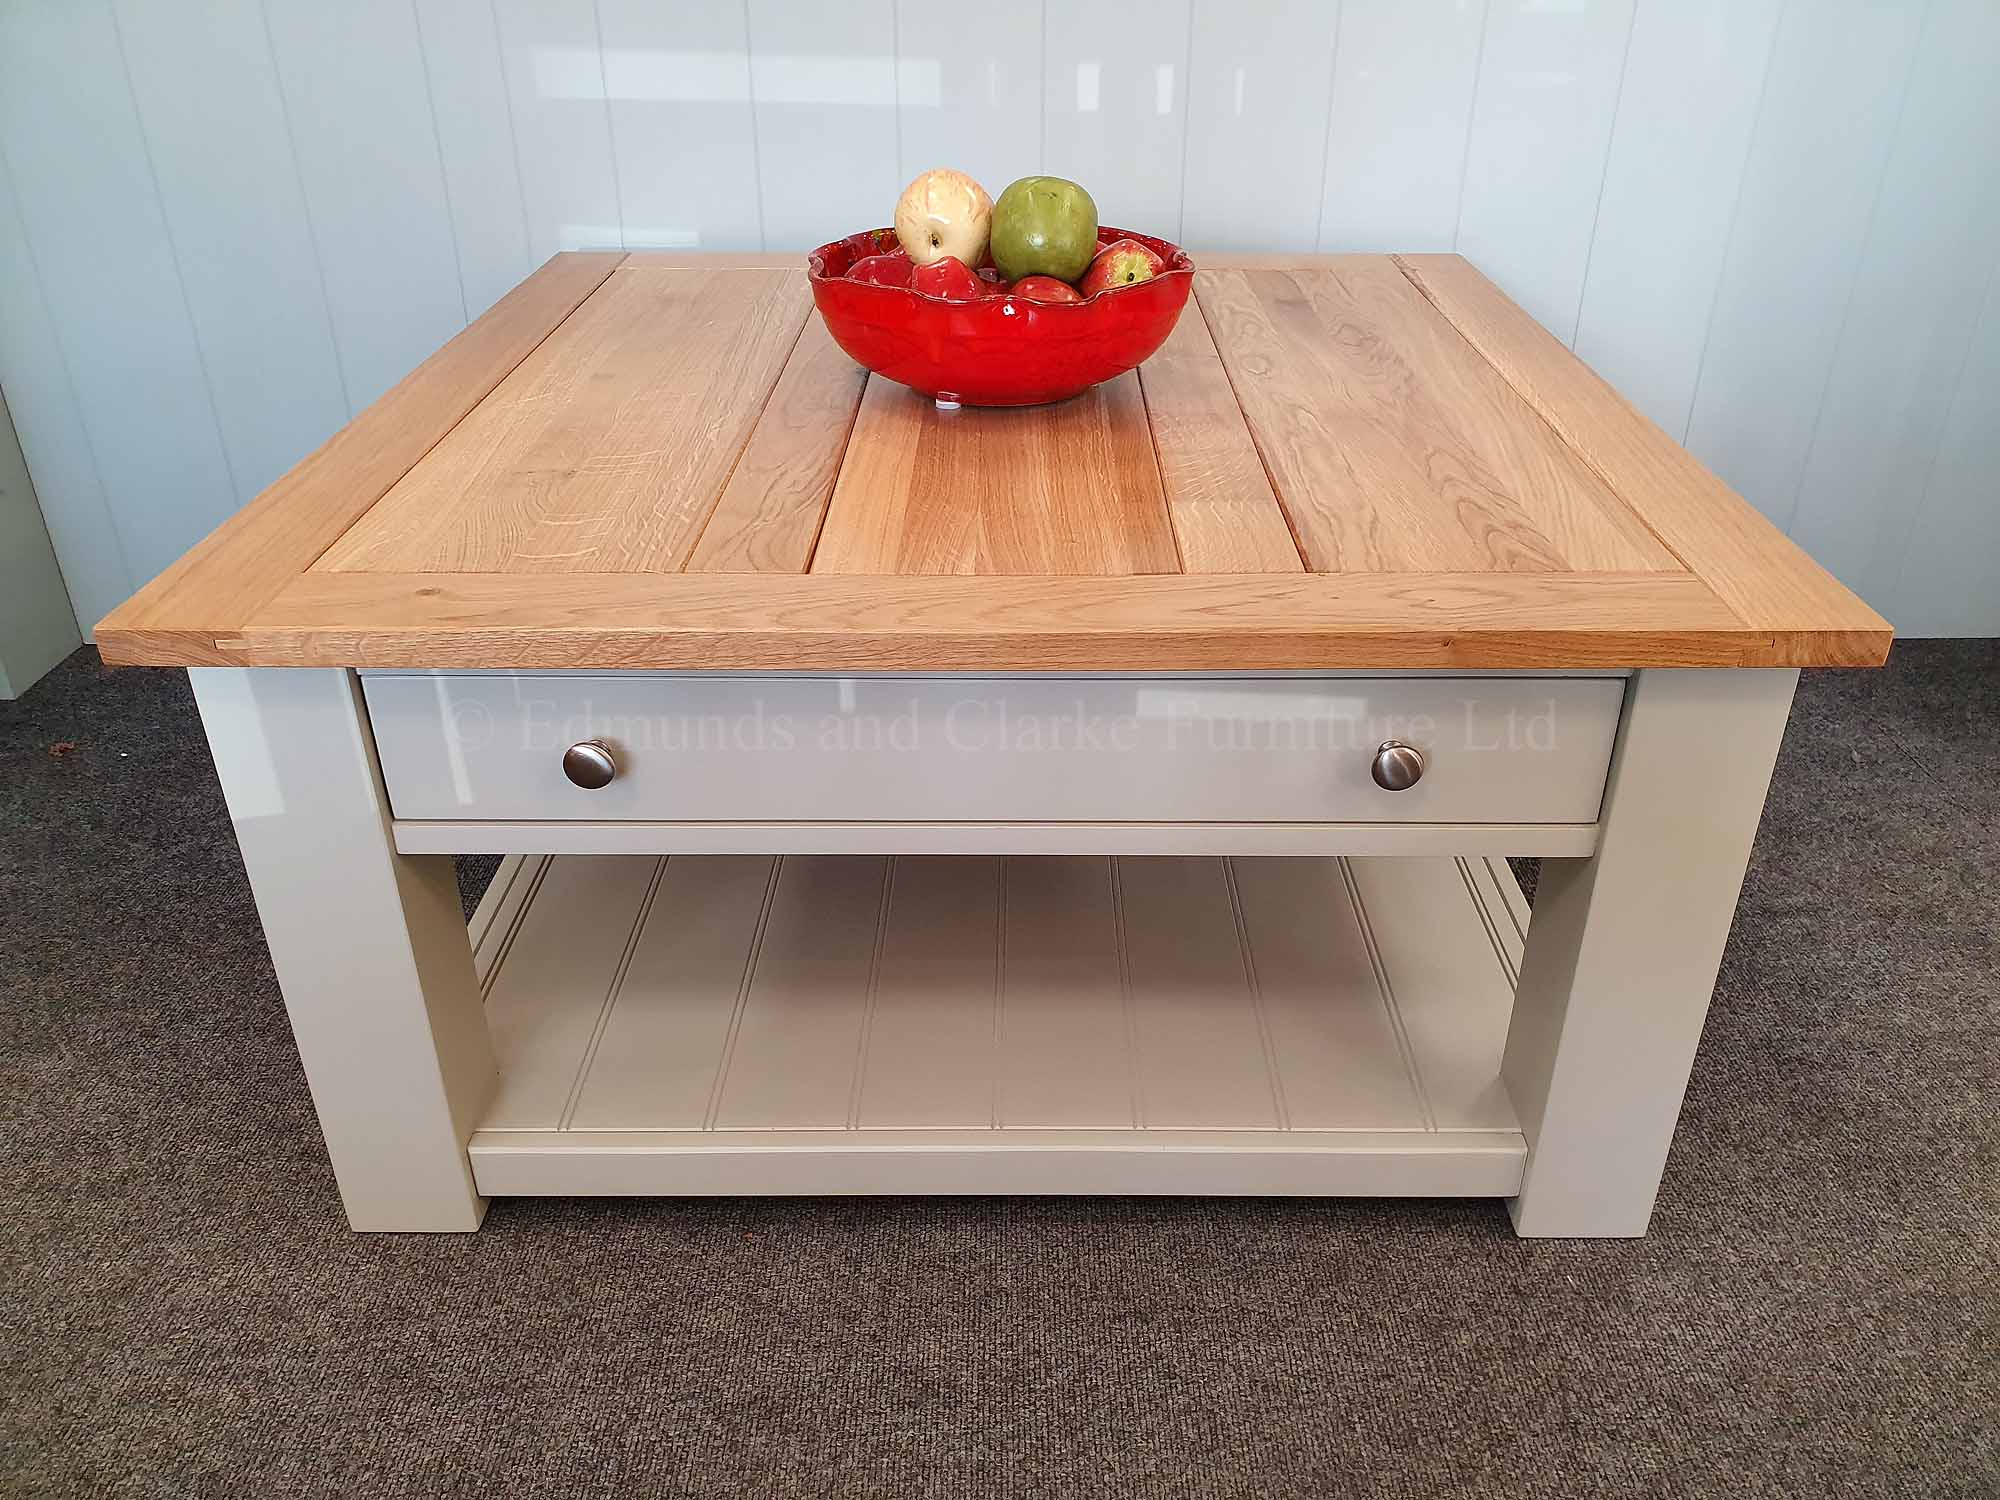 Picture of: Bespoke Large Square Coffee Table Edmunds And Clarke Furniture